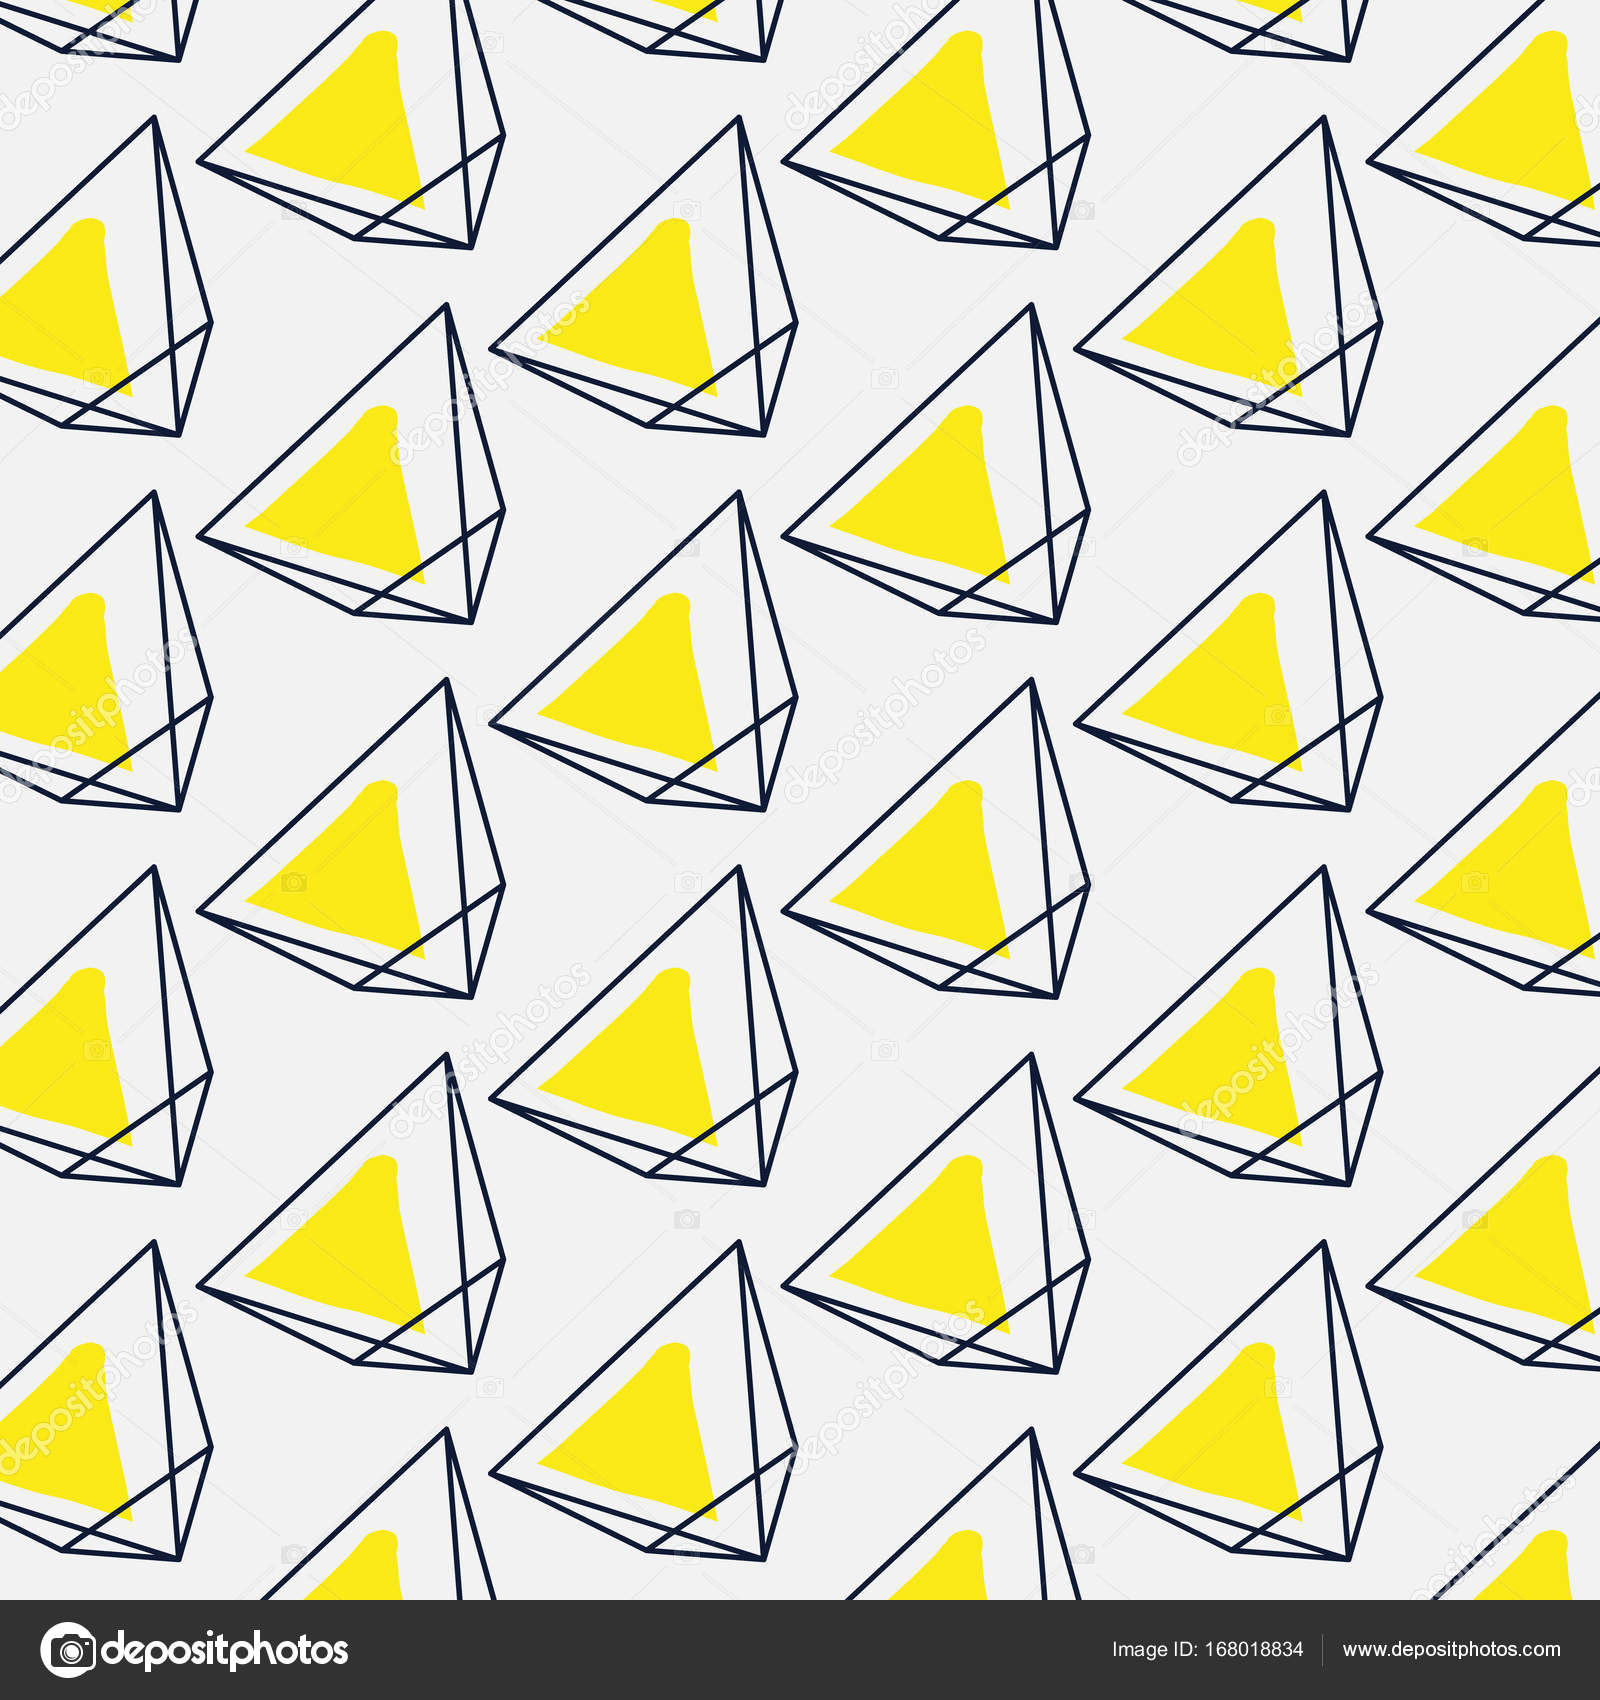 vector abstract simple geometric signs yellow black graphic